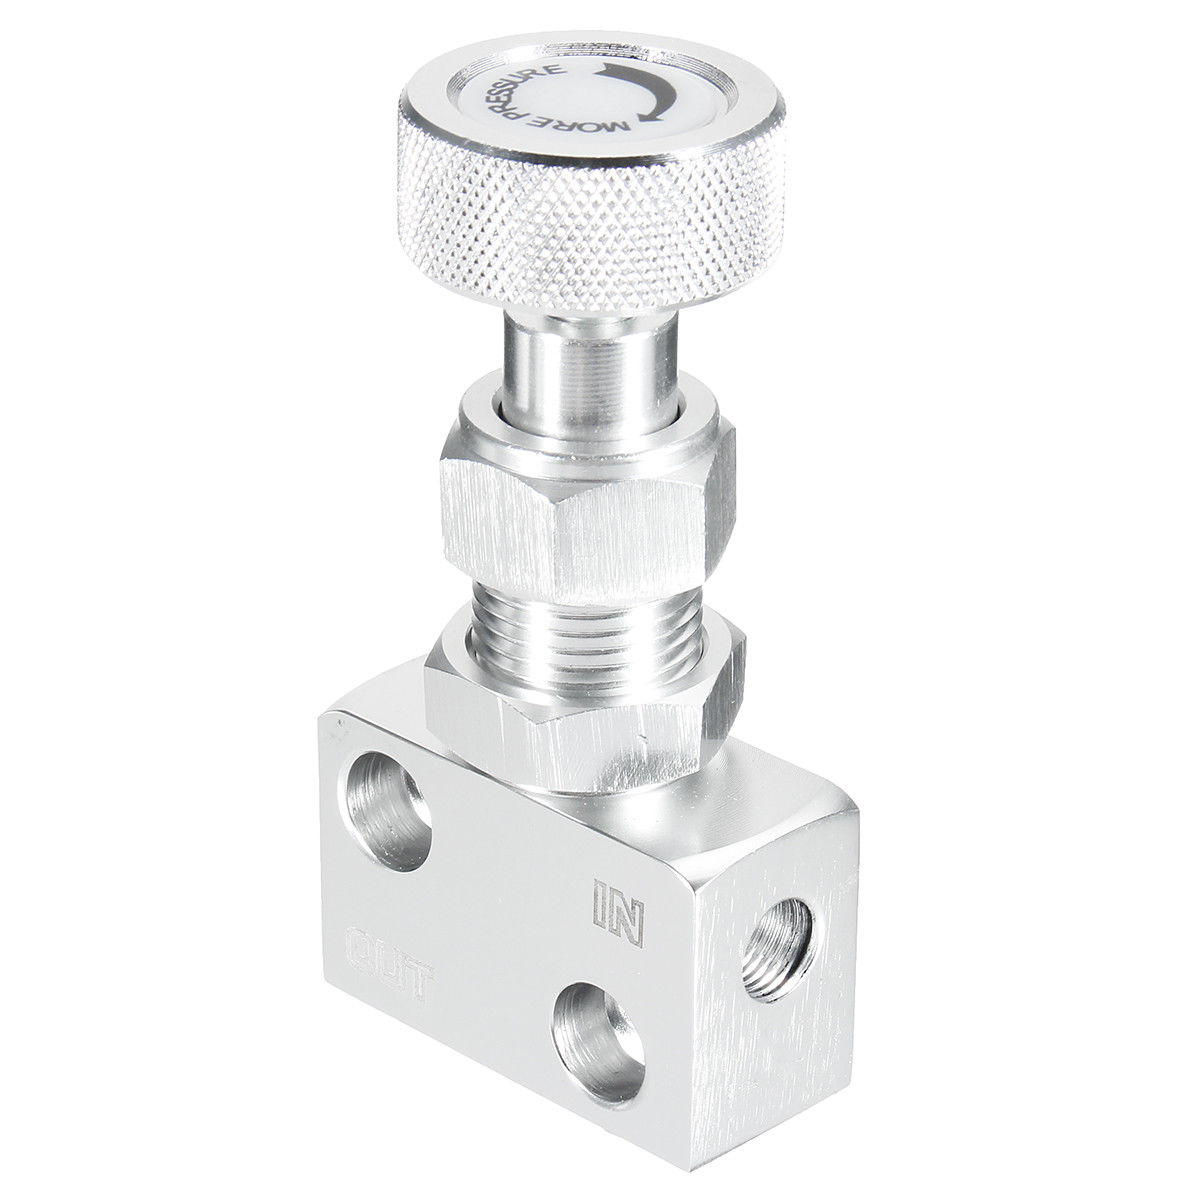 Universal Adjustable CNC Brake Proportioning Bias Valve Knob Style Suit Disc Drum 1//8 NPT Valve